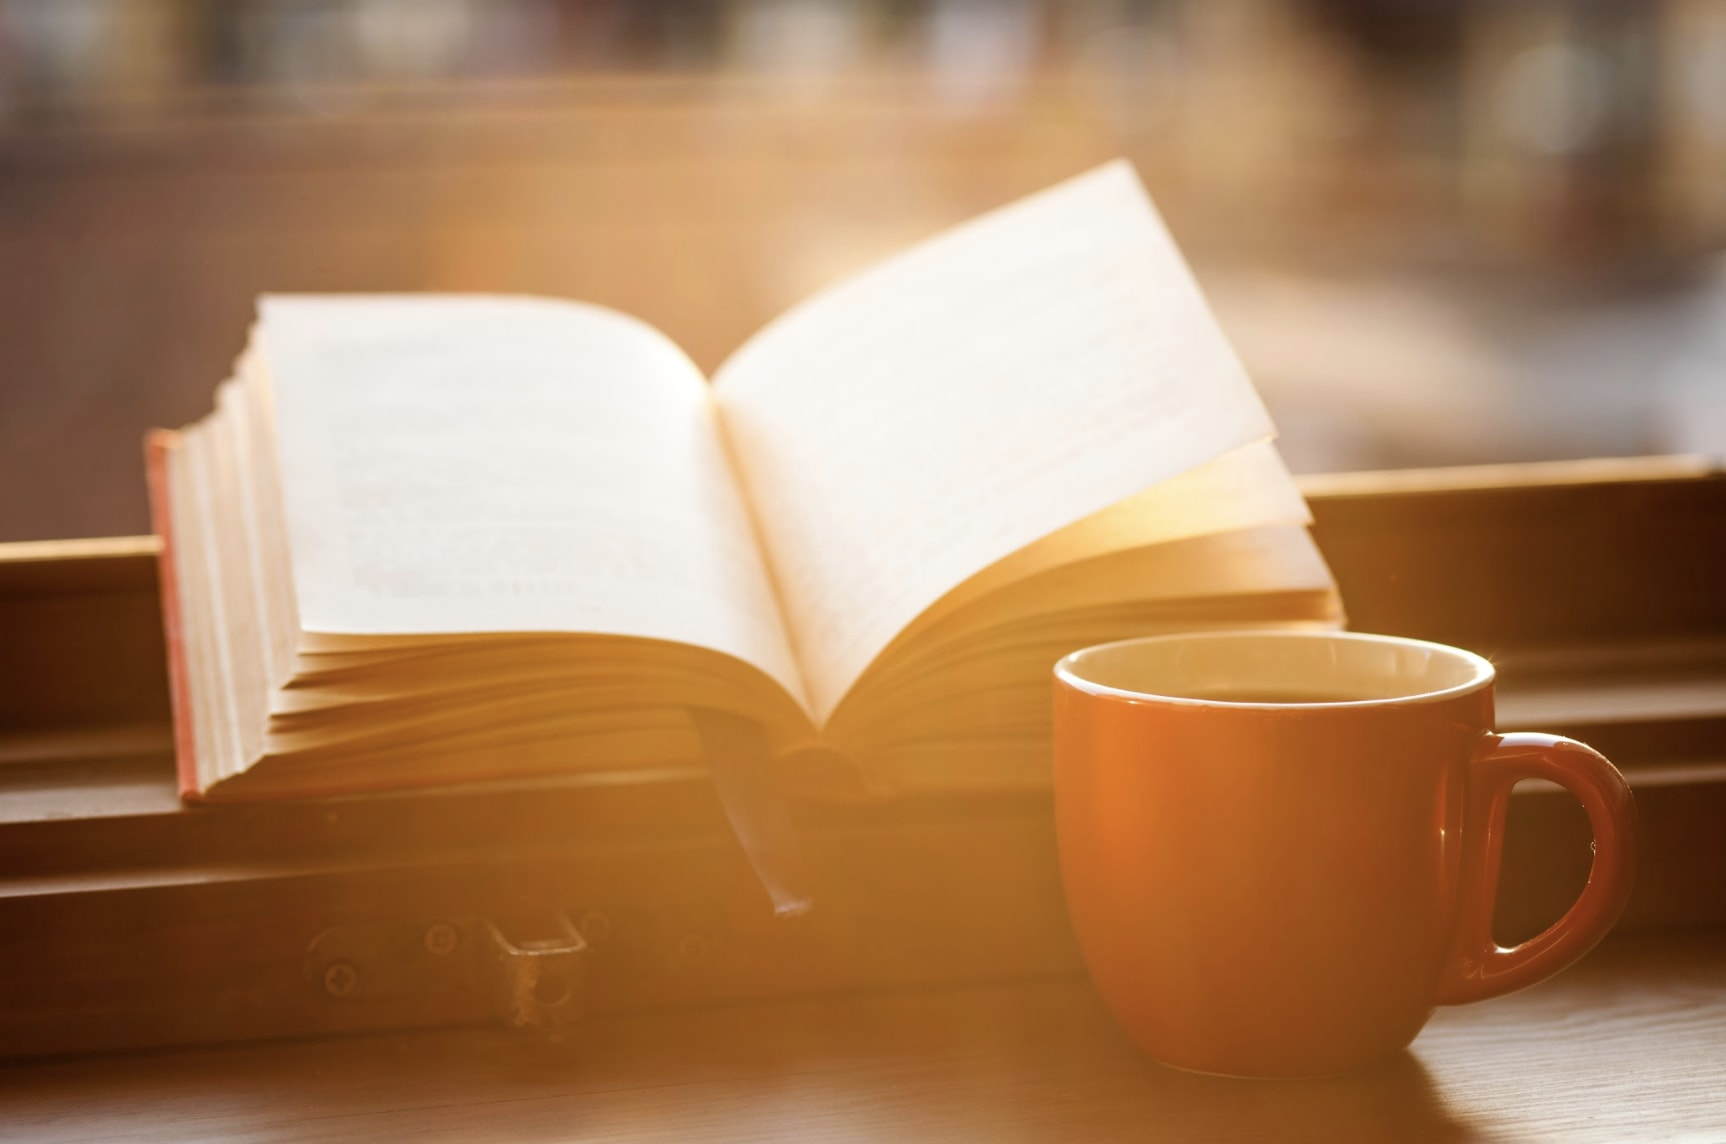 A cup of coffee and a book